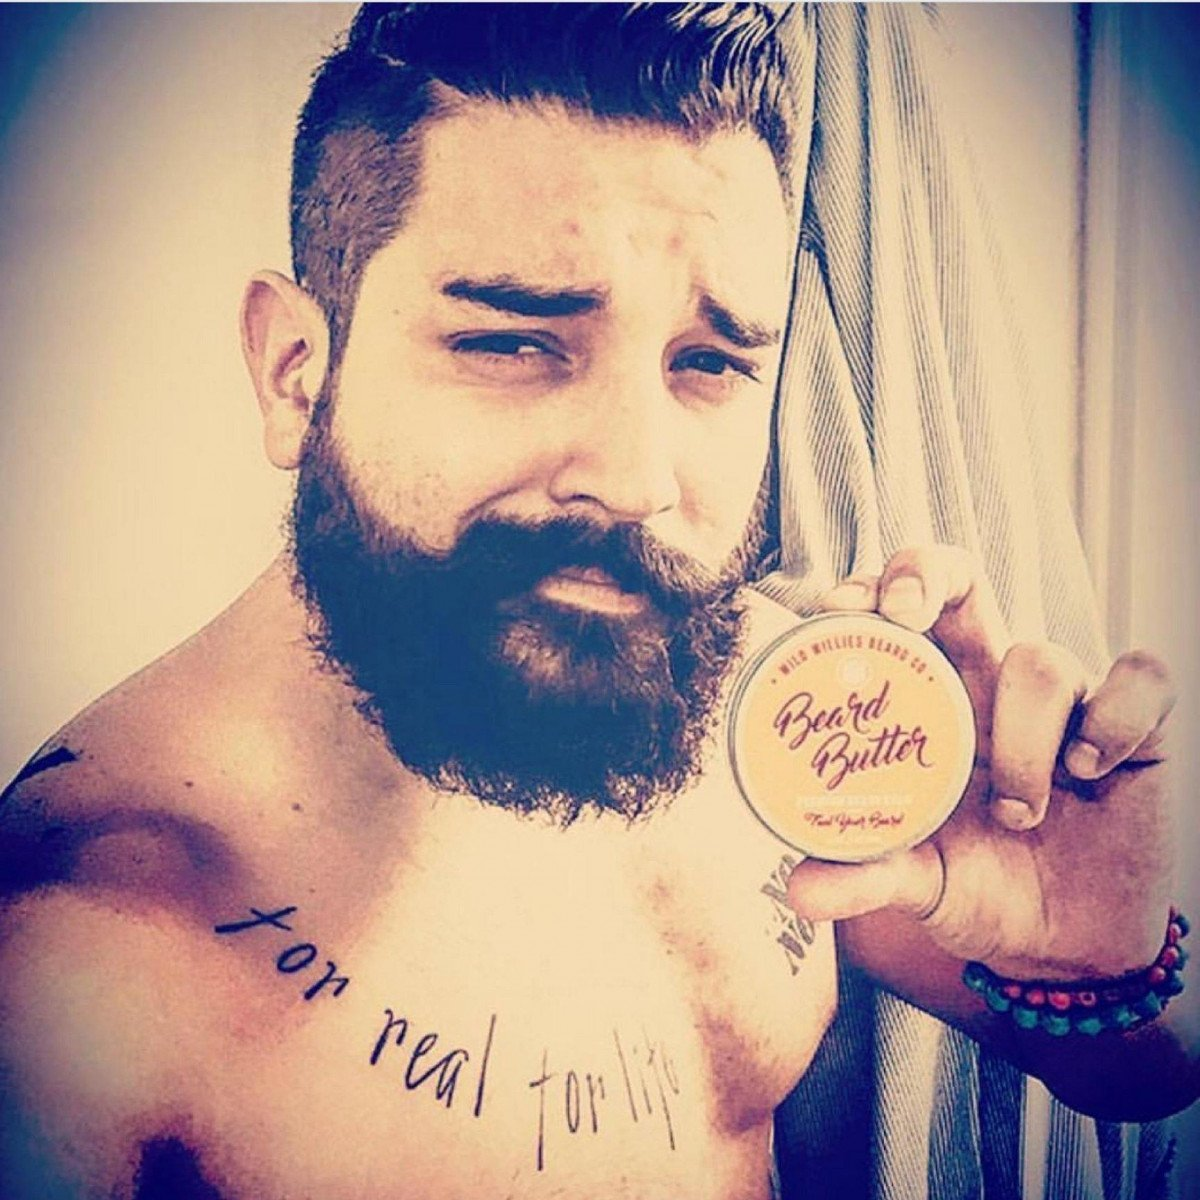 How much beard balm to use for the perfect beard [2021]